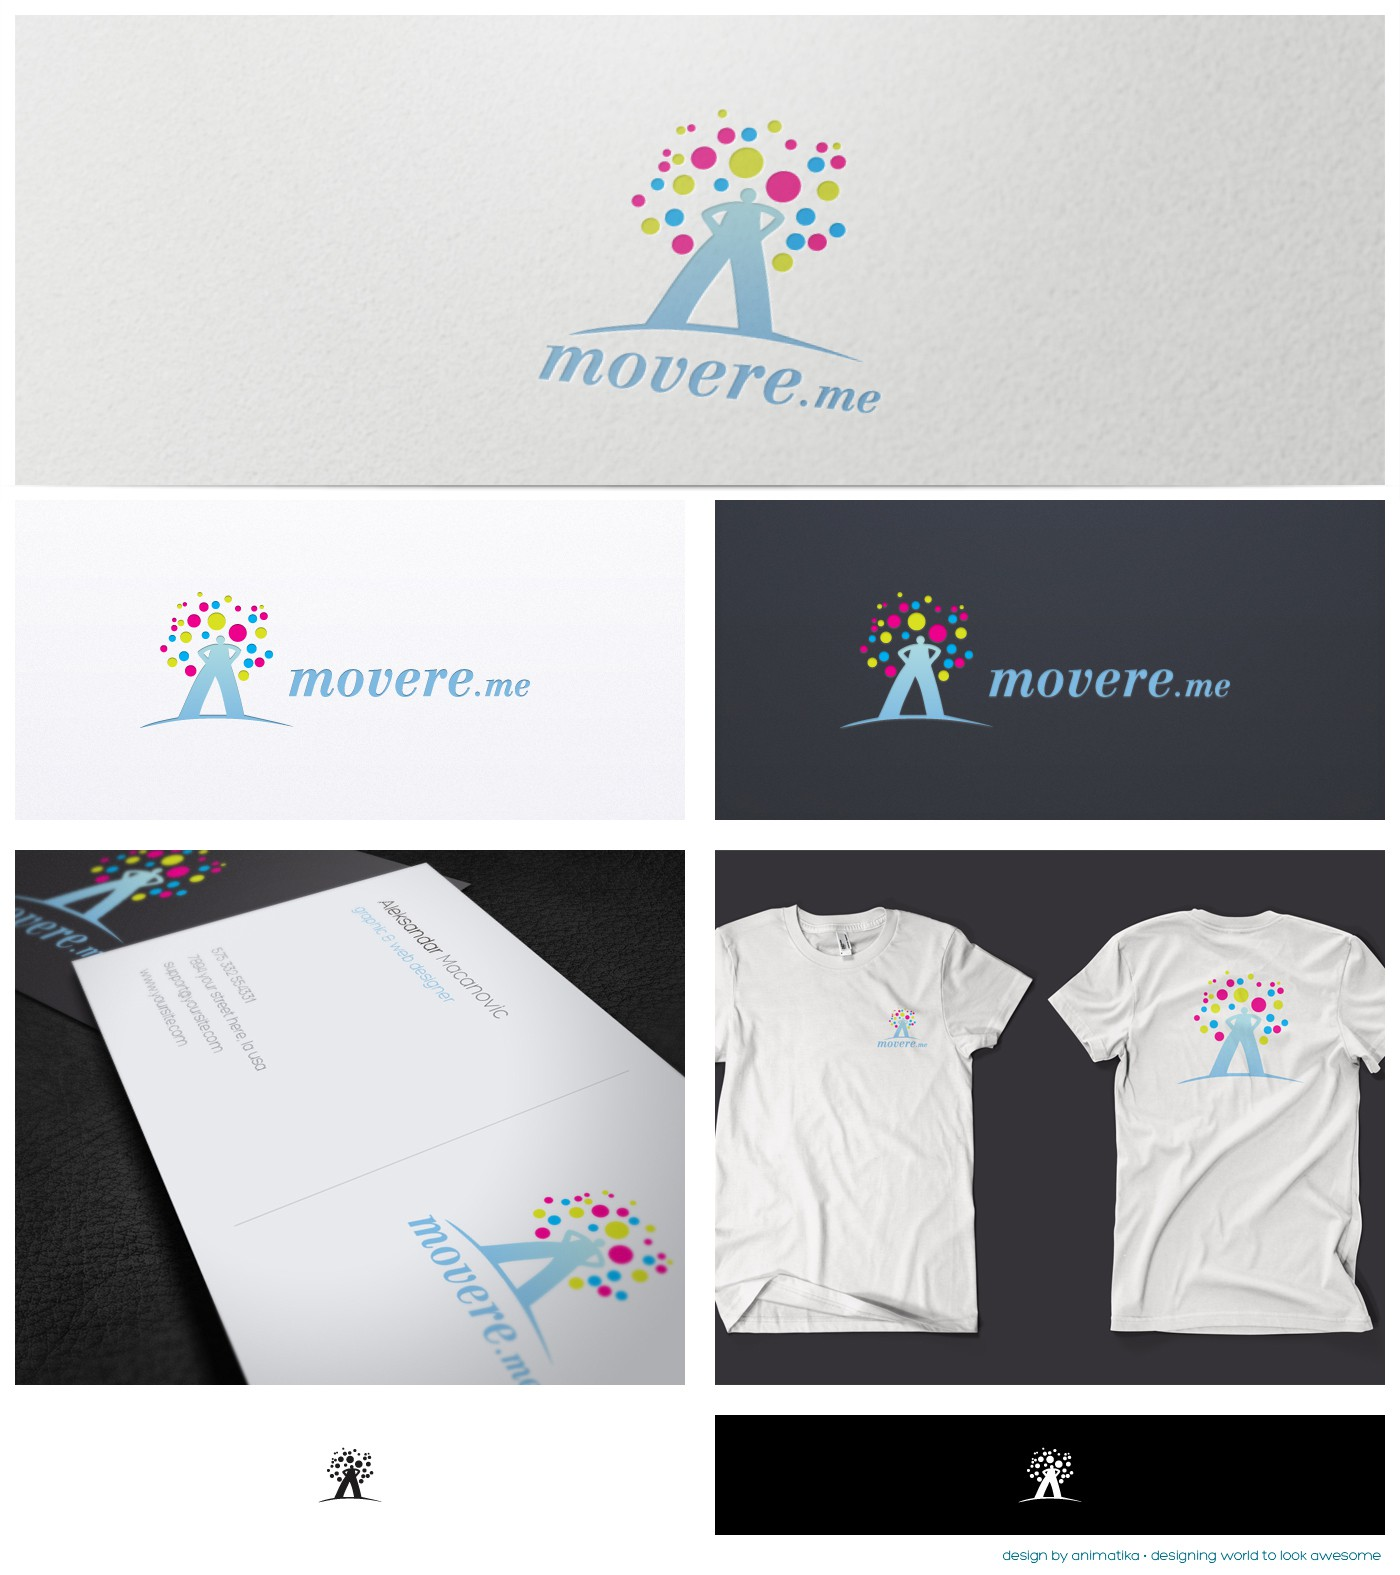 a new logo for movere.me, a brazilian site of crowdfunding